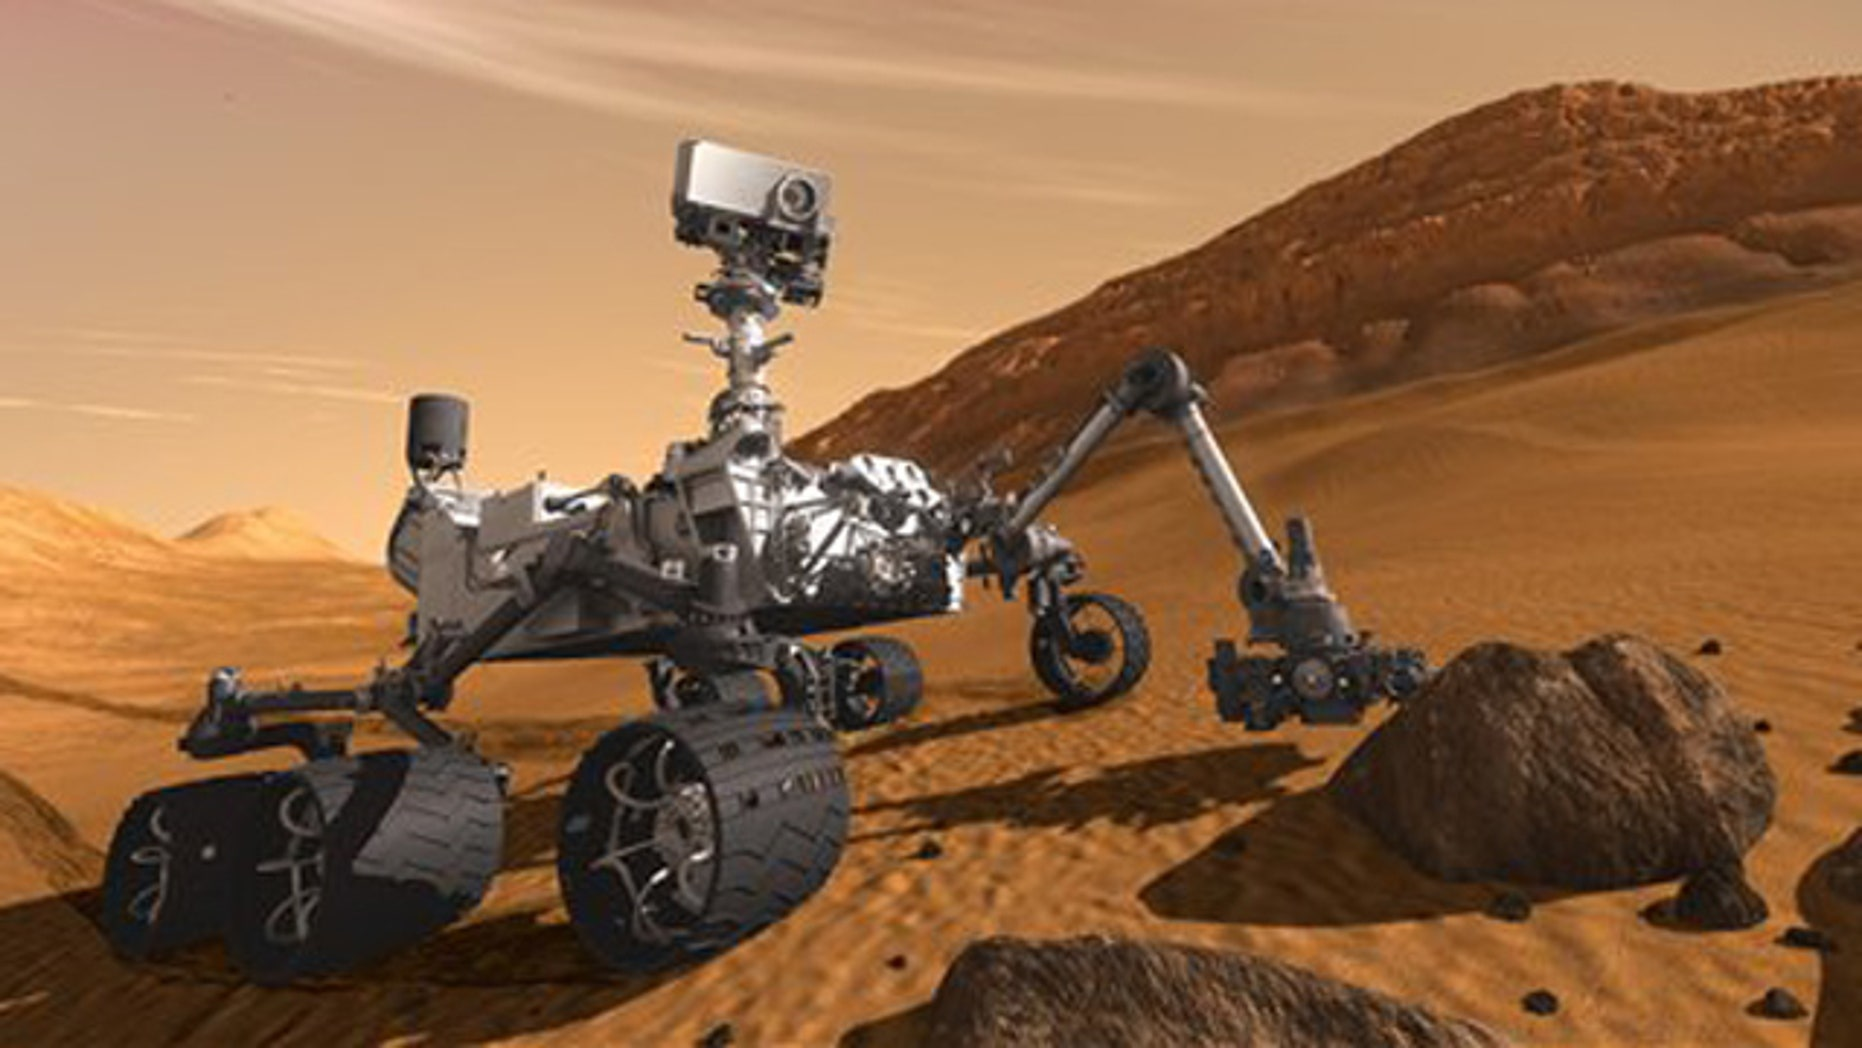 In this 2011 artist's rendering provided by NASA/JPL-Caltech, the Mars Science Laboratory Curiosity rover examines a rock on Mars with a set of tools at the end of its arm, which extends about 7 feet.